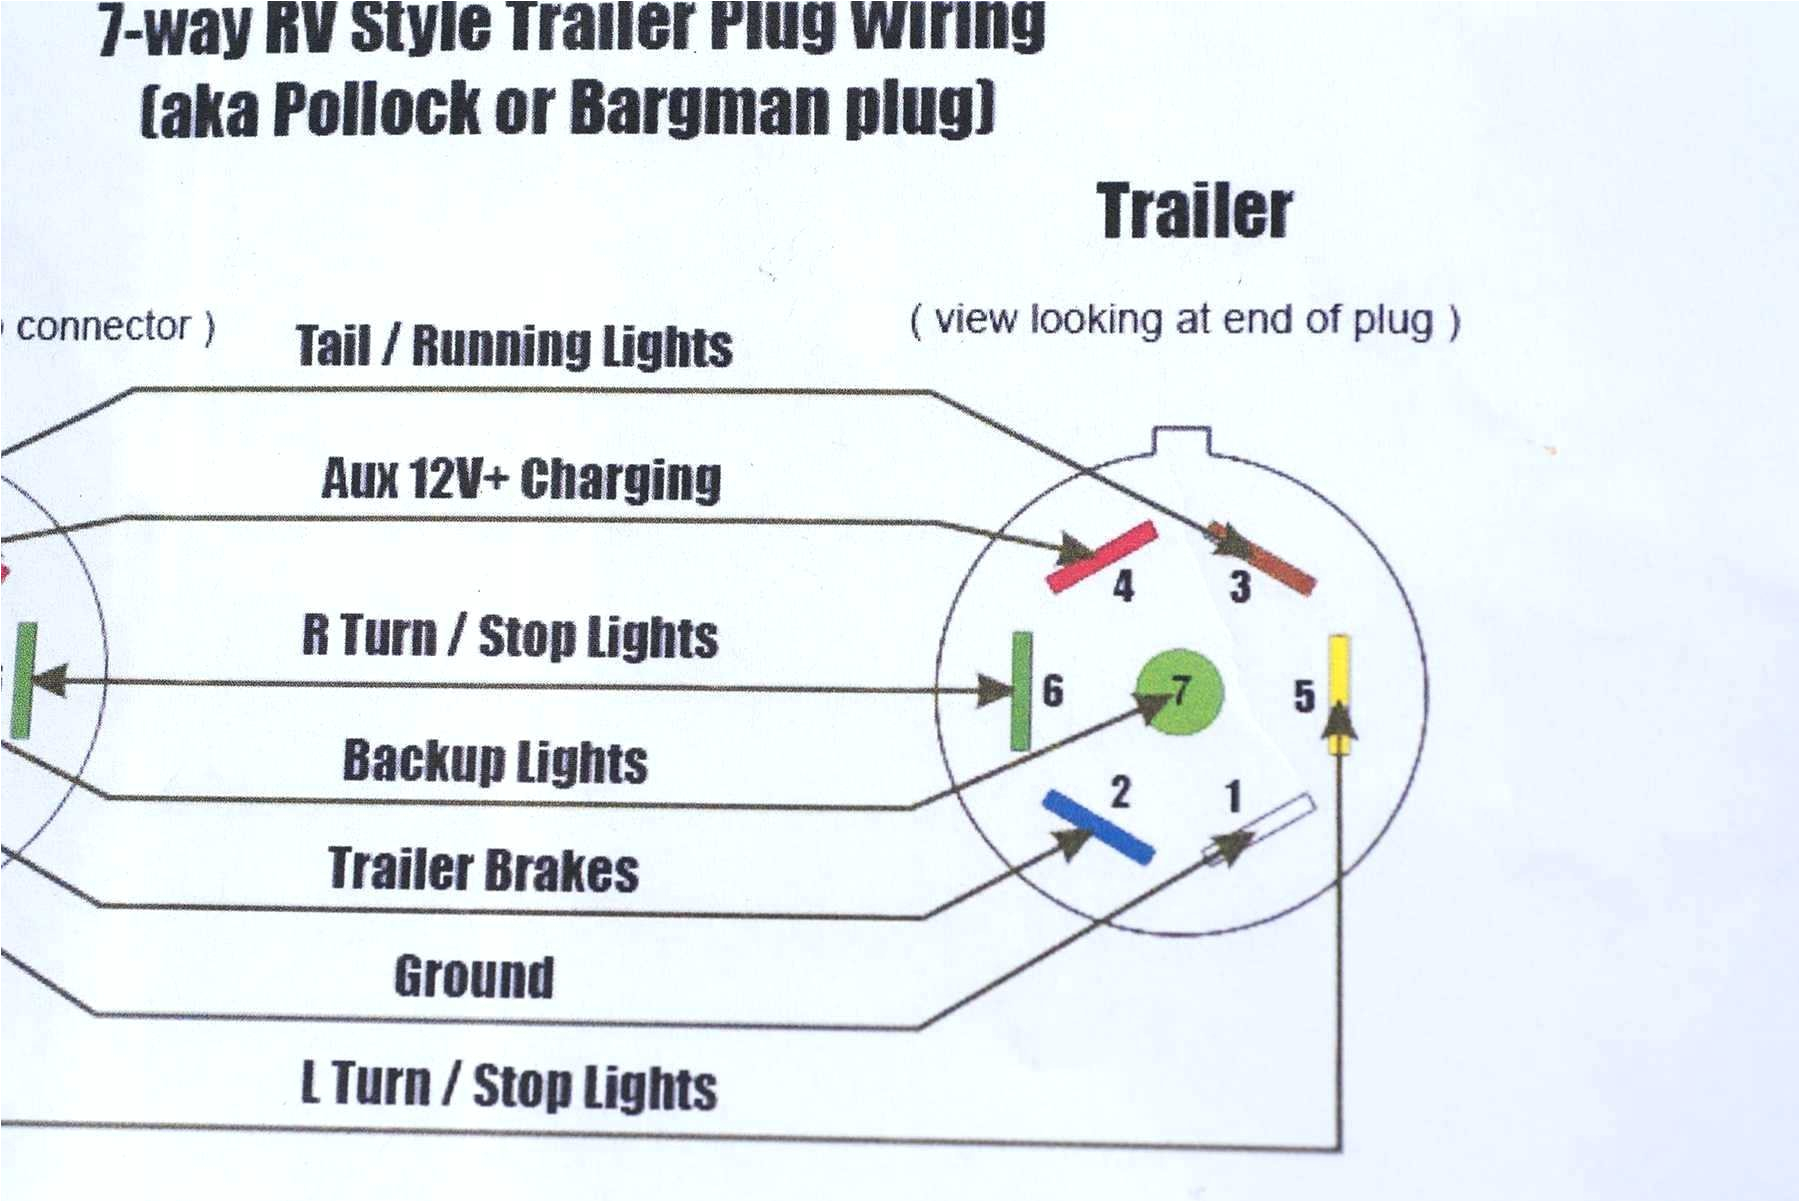 hopkins 7 way rv plug wiring diagram wiring diagram perfomance hopkins rv plug wiring diagram hopkins